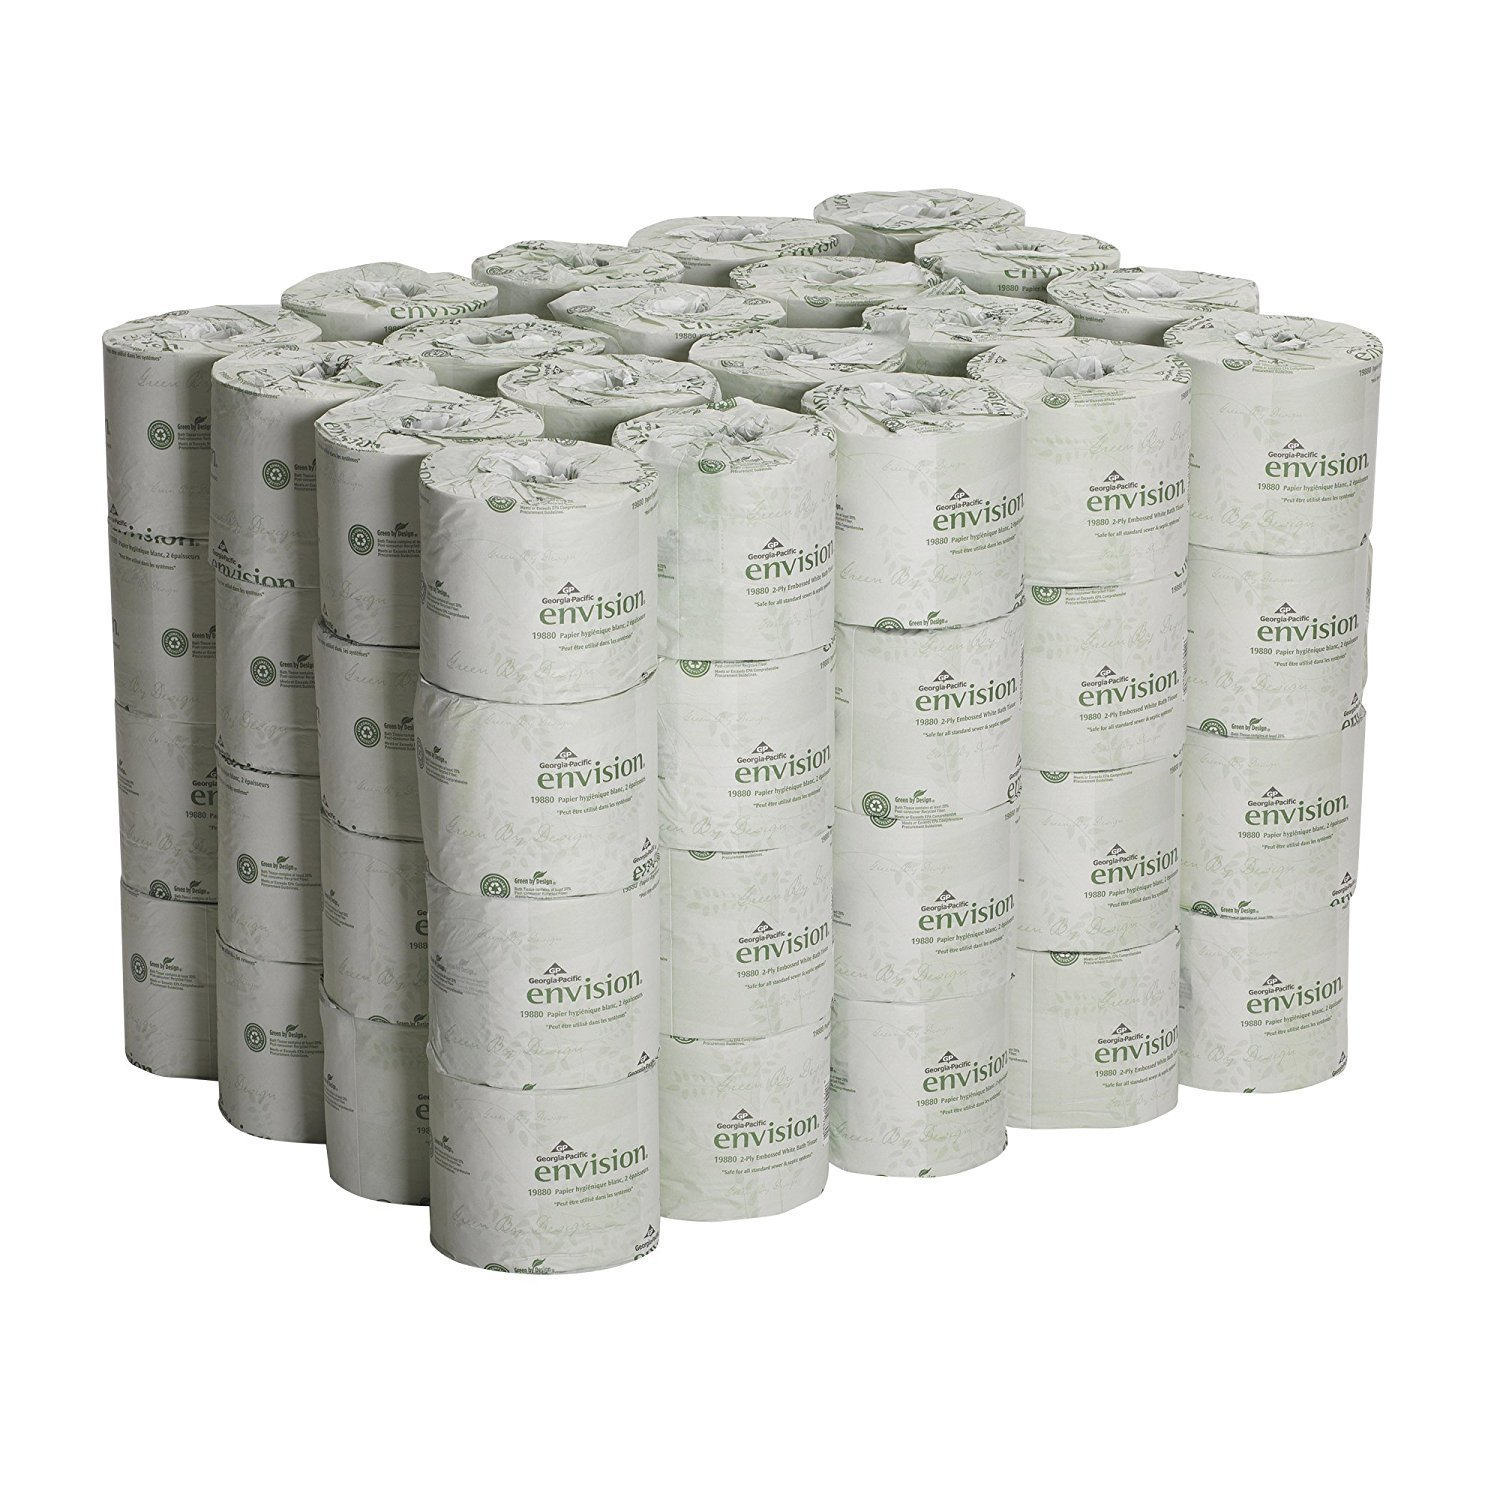 Georgia Pacific MYFvnx Professional 1988001 Bathroom Tissue, 550 Sheets Per Roll, Case of 80, 4 Units